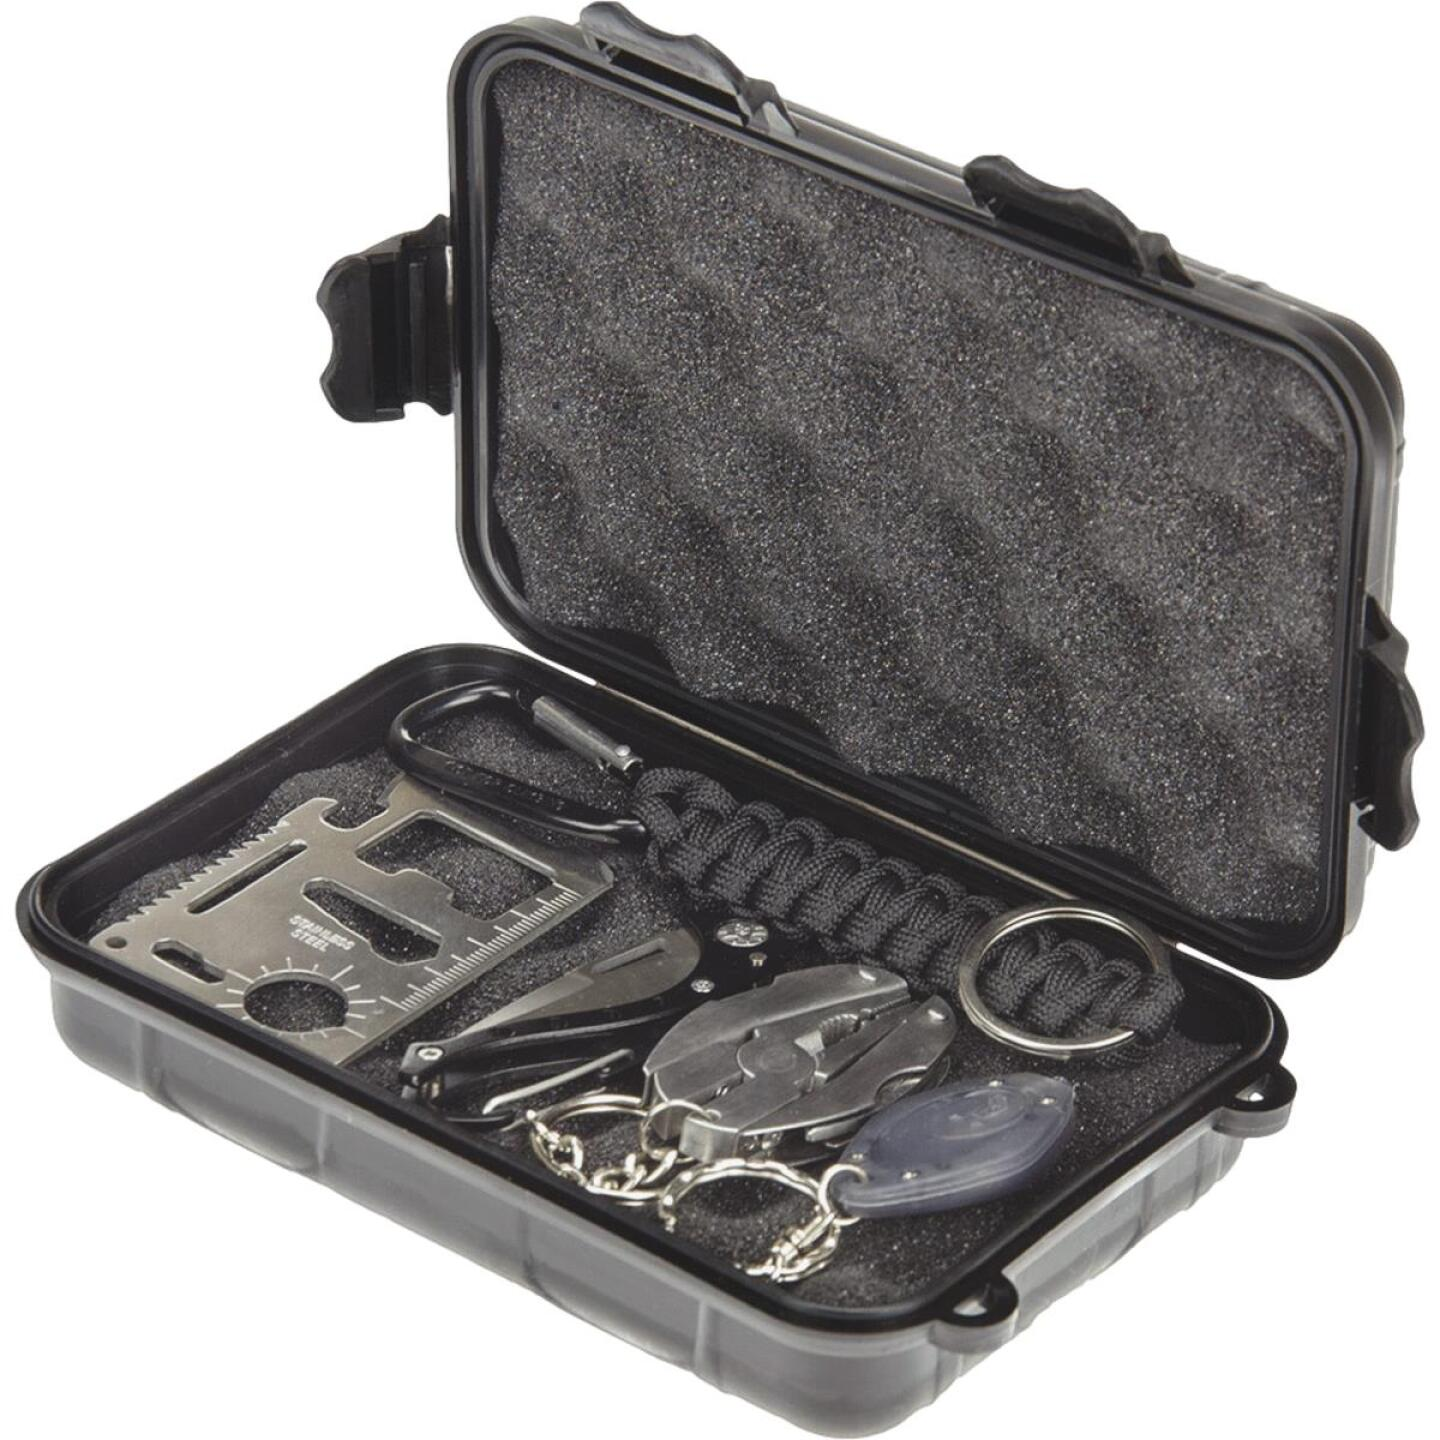 Lucky Line Utilicarry EveryDay Carry Key Tool Kit Image 1